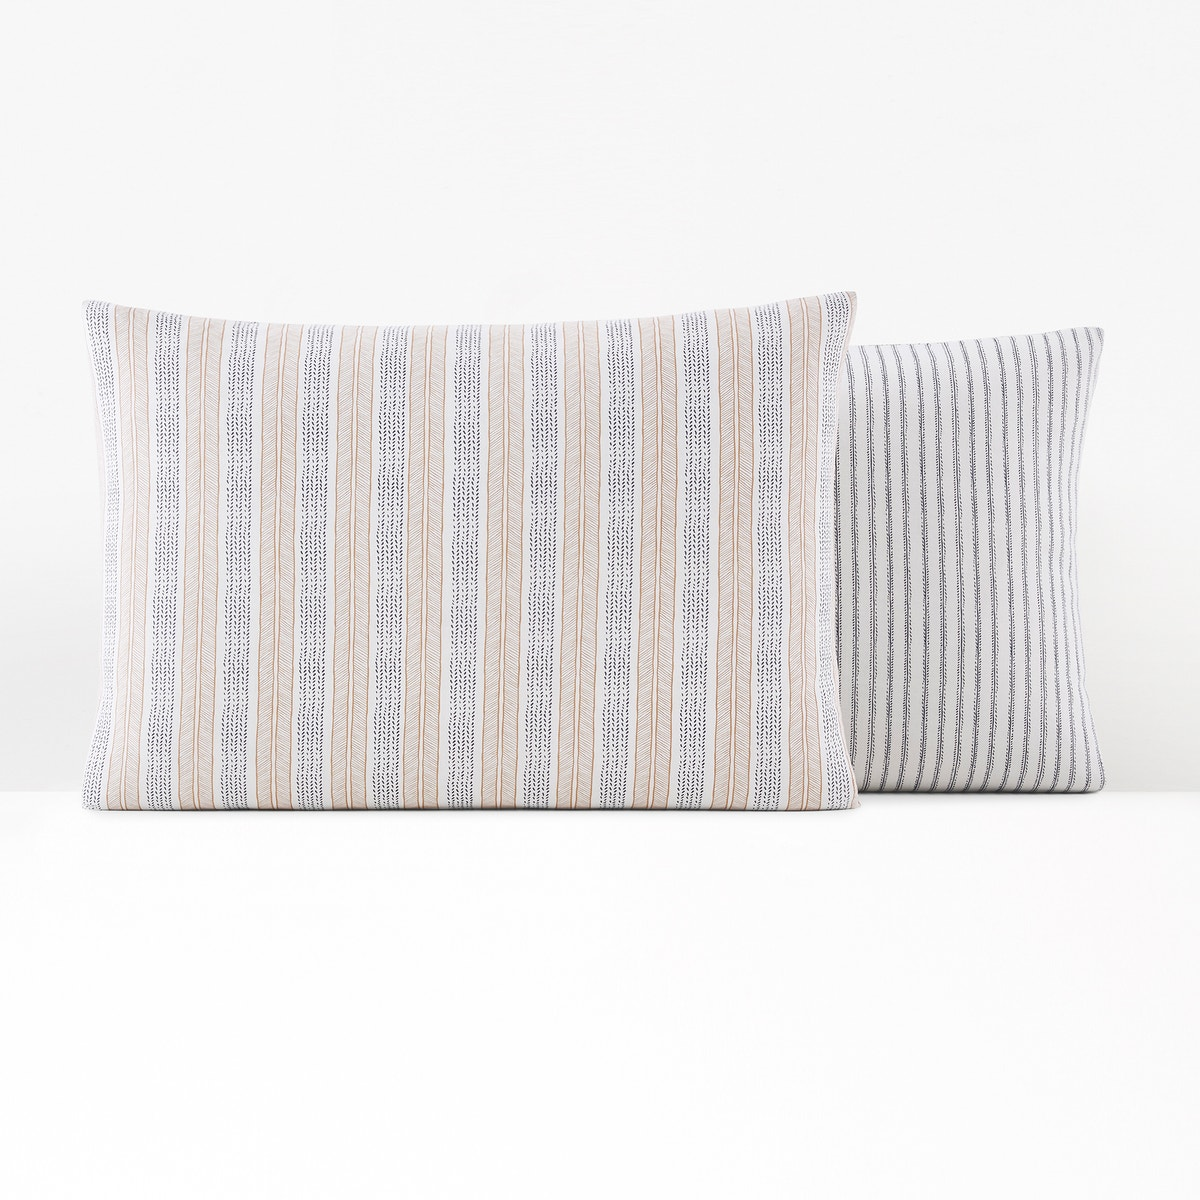 Summer Roots Pillowcase in Washed Cotton